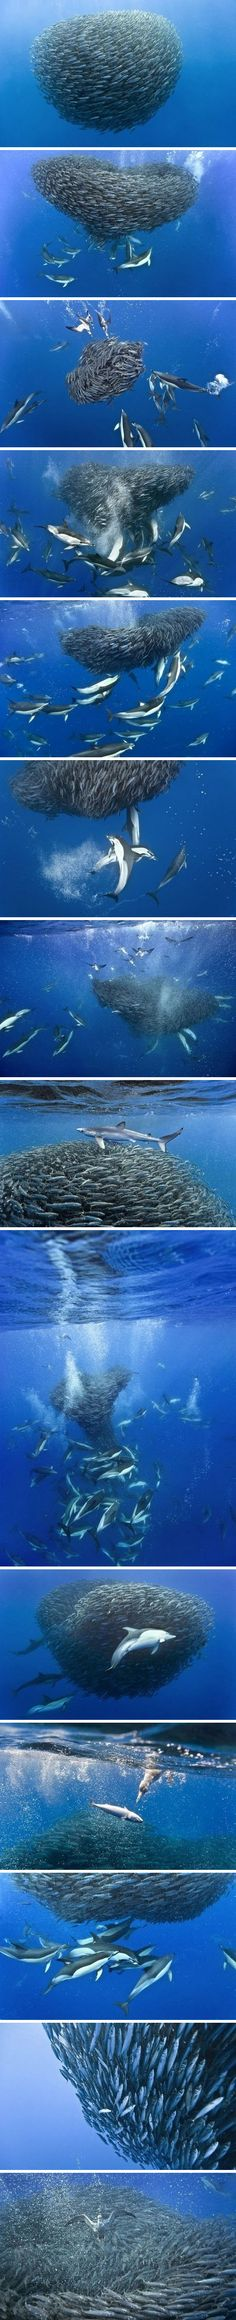 Smorgasboard: Dolphins circling a school of fish, trapping them in a mini whirlpool. Then? They charge at the school. | British photographer Christopher Soun